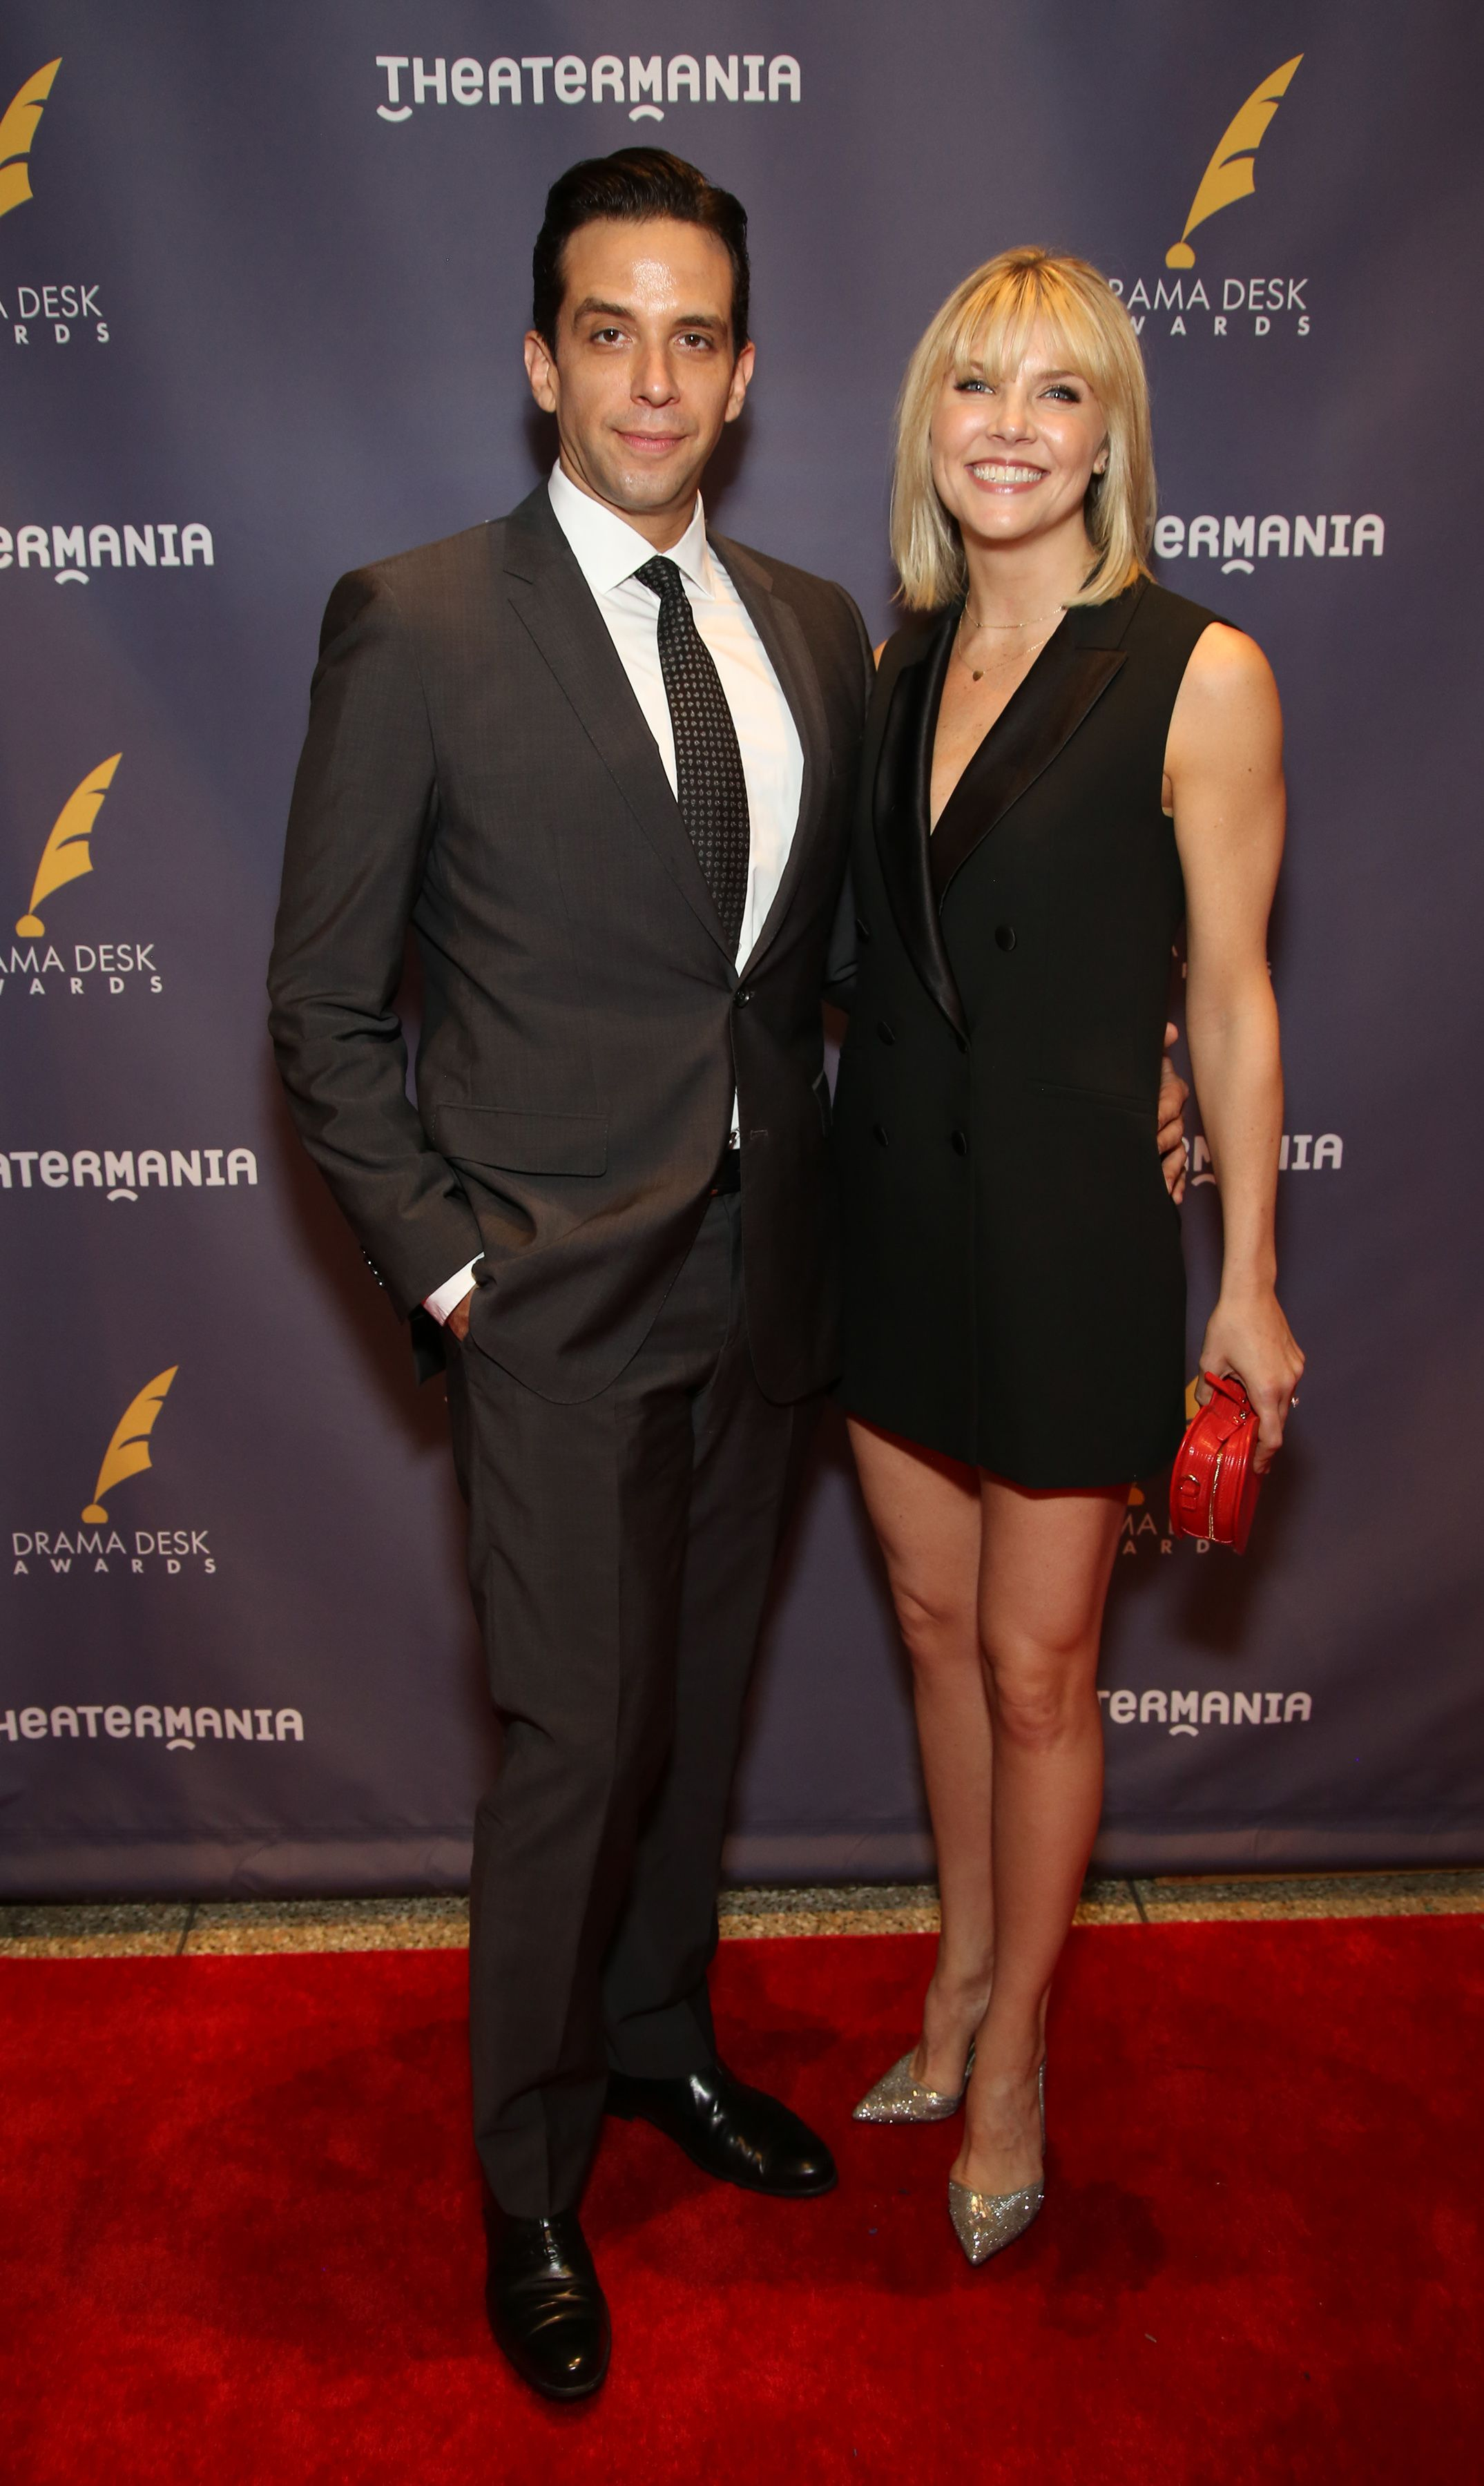 Nick Cordero and Amanda Kloots at the 2017 Drama Desk Awards at Town Hall on June 4, 2017 in New York City. | Photo: Getty Images